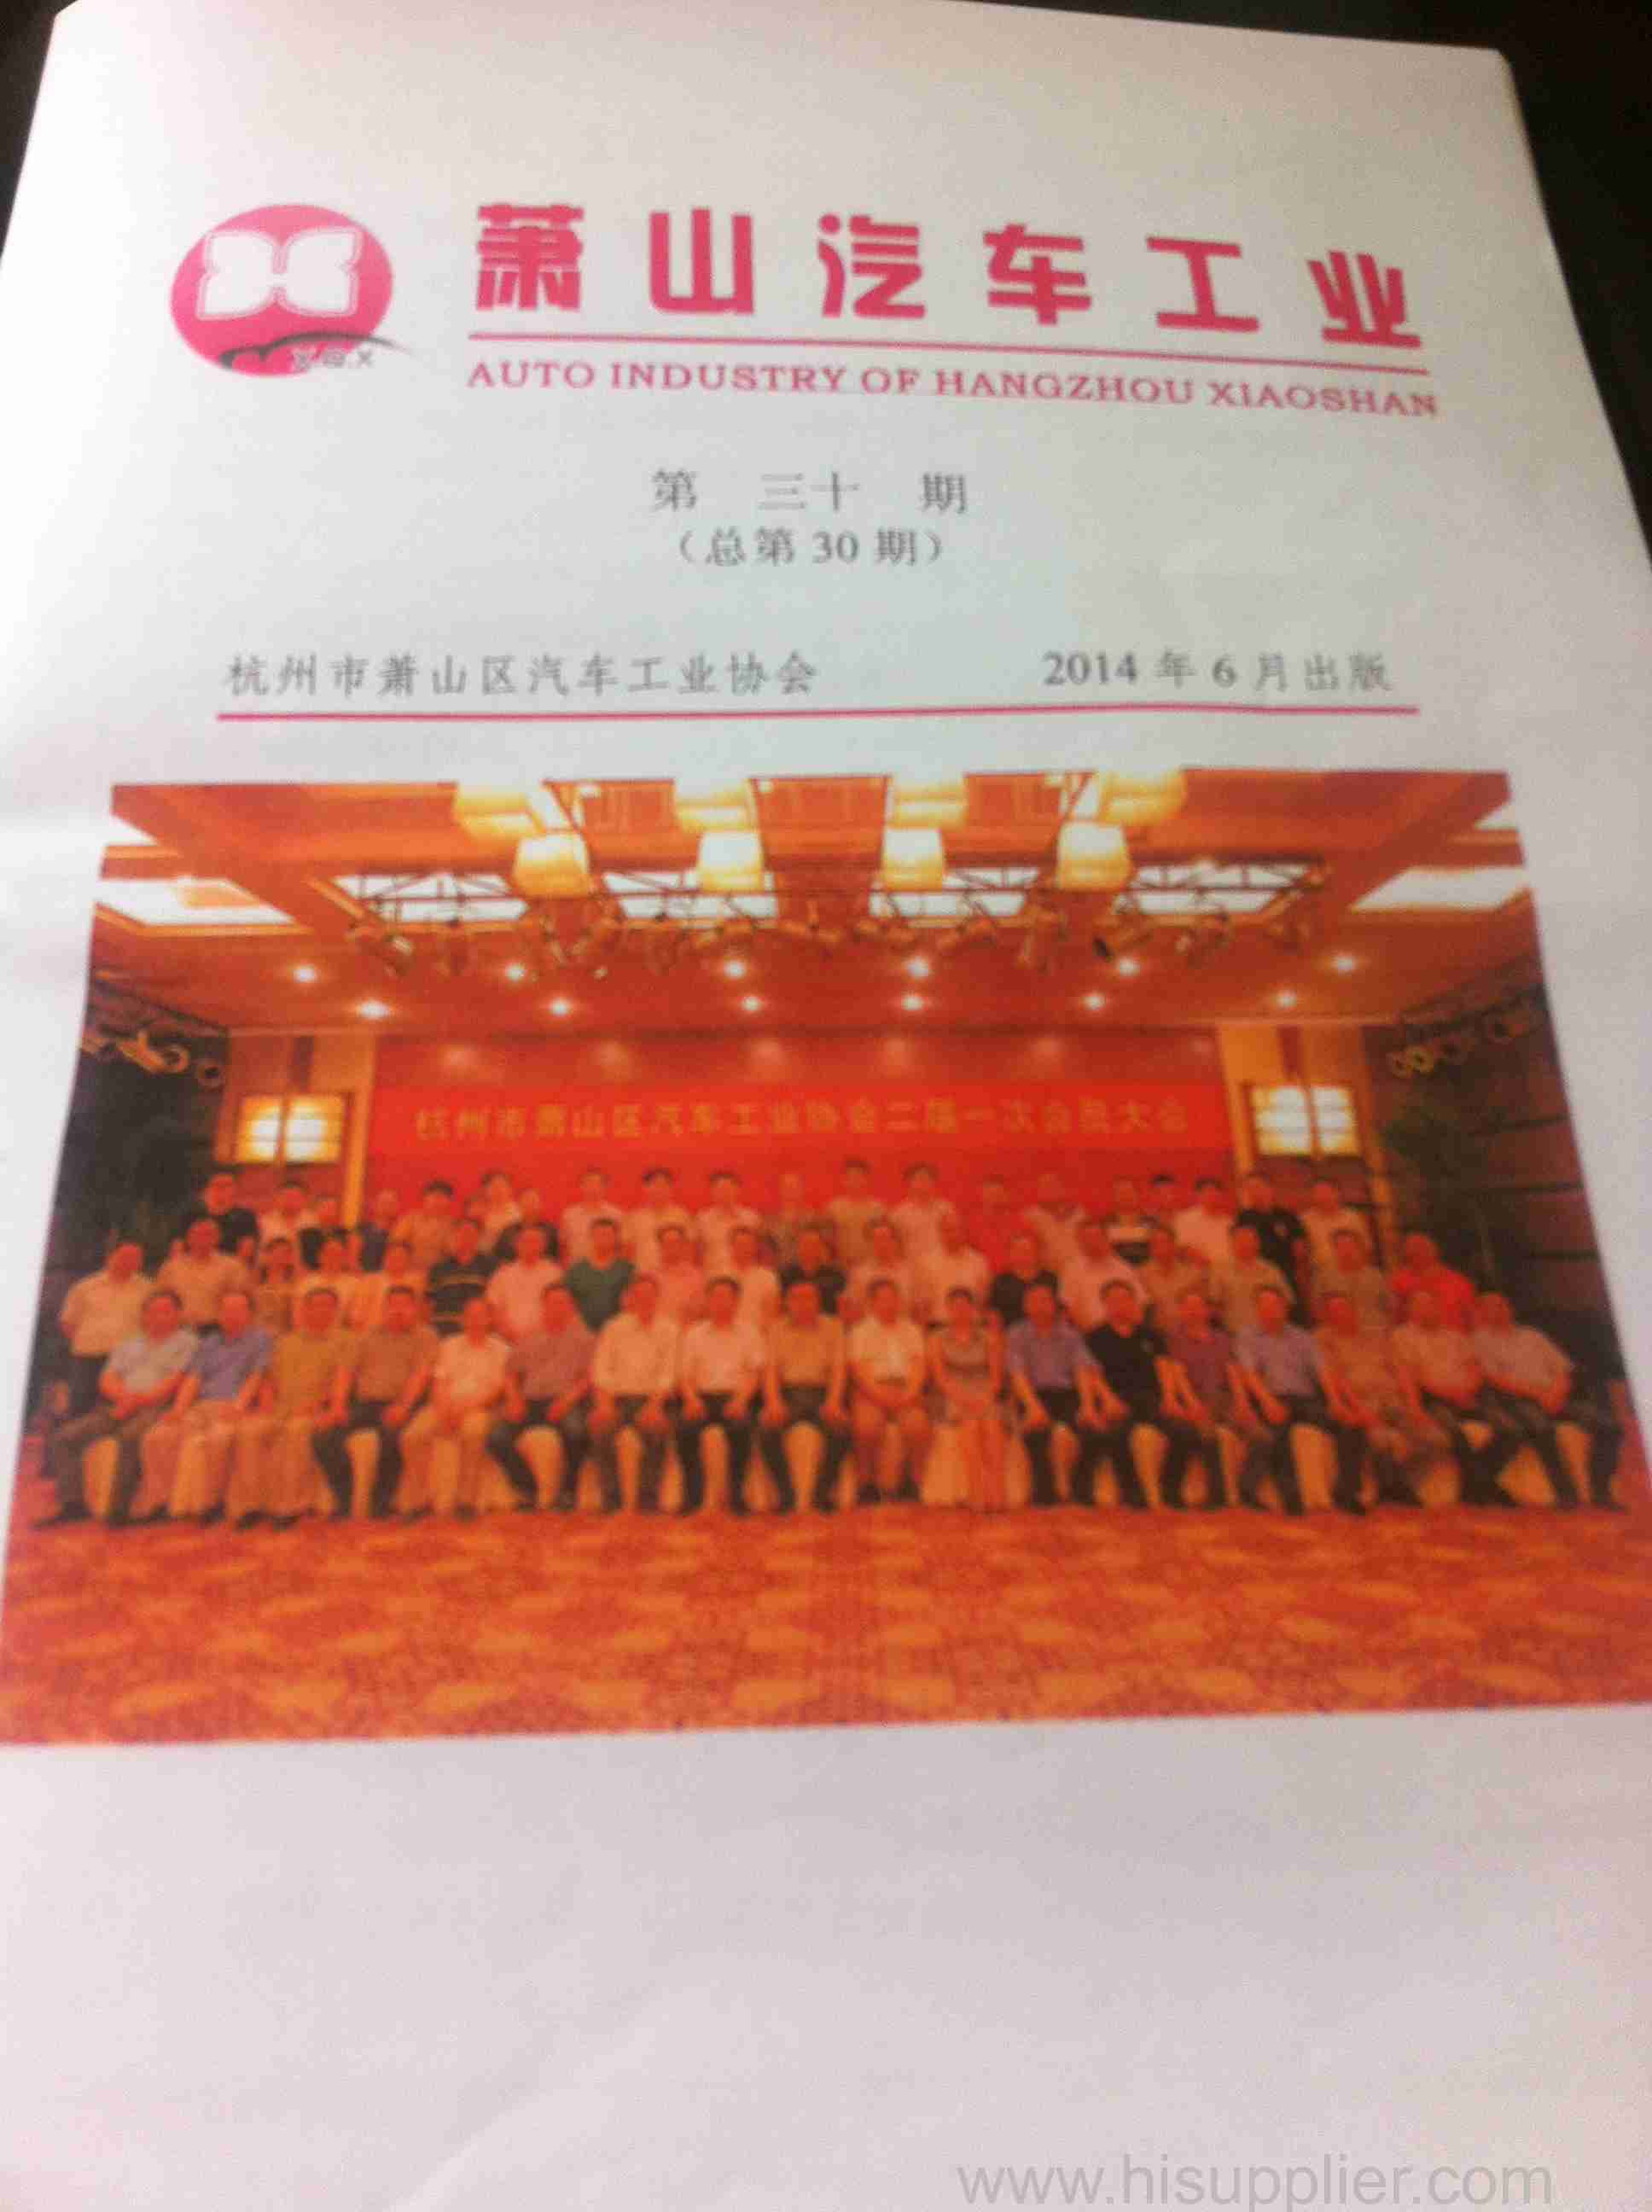 The news on the magazine of Xiaoshan car industry